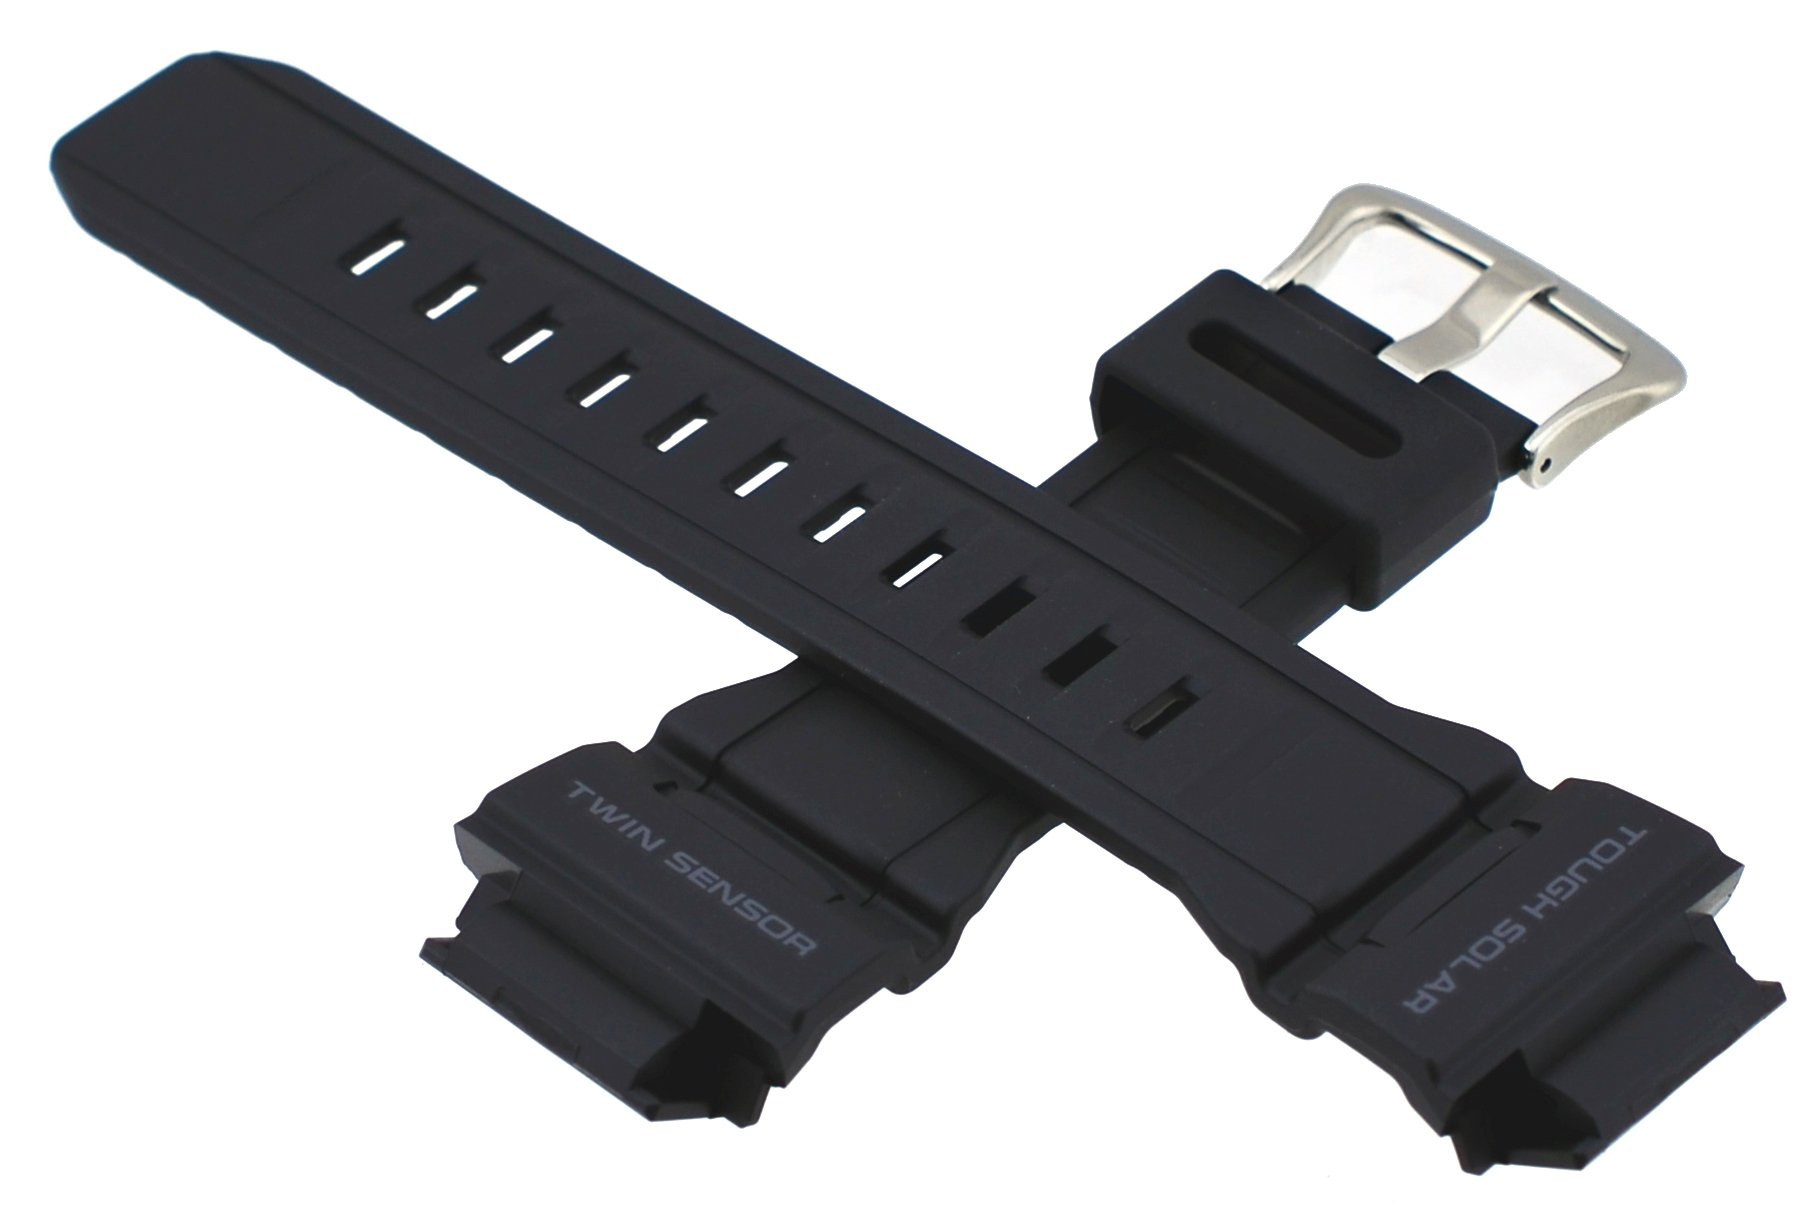 CASIO REPLACEMENT STRAP FOR G-9300-1V